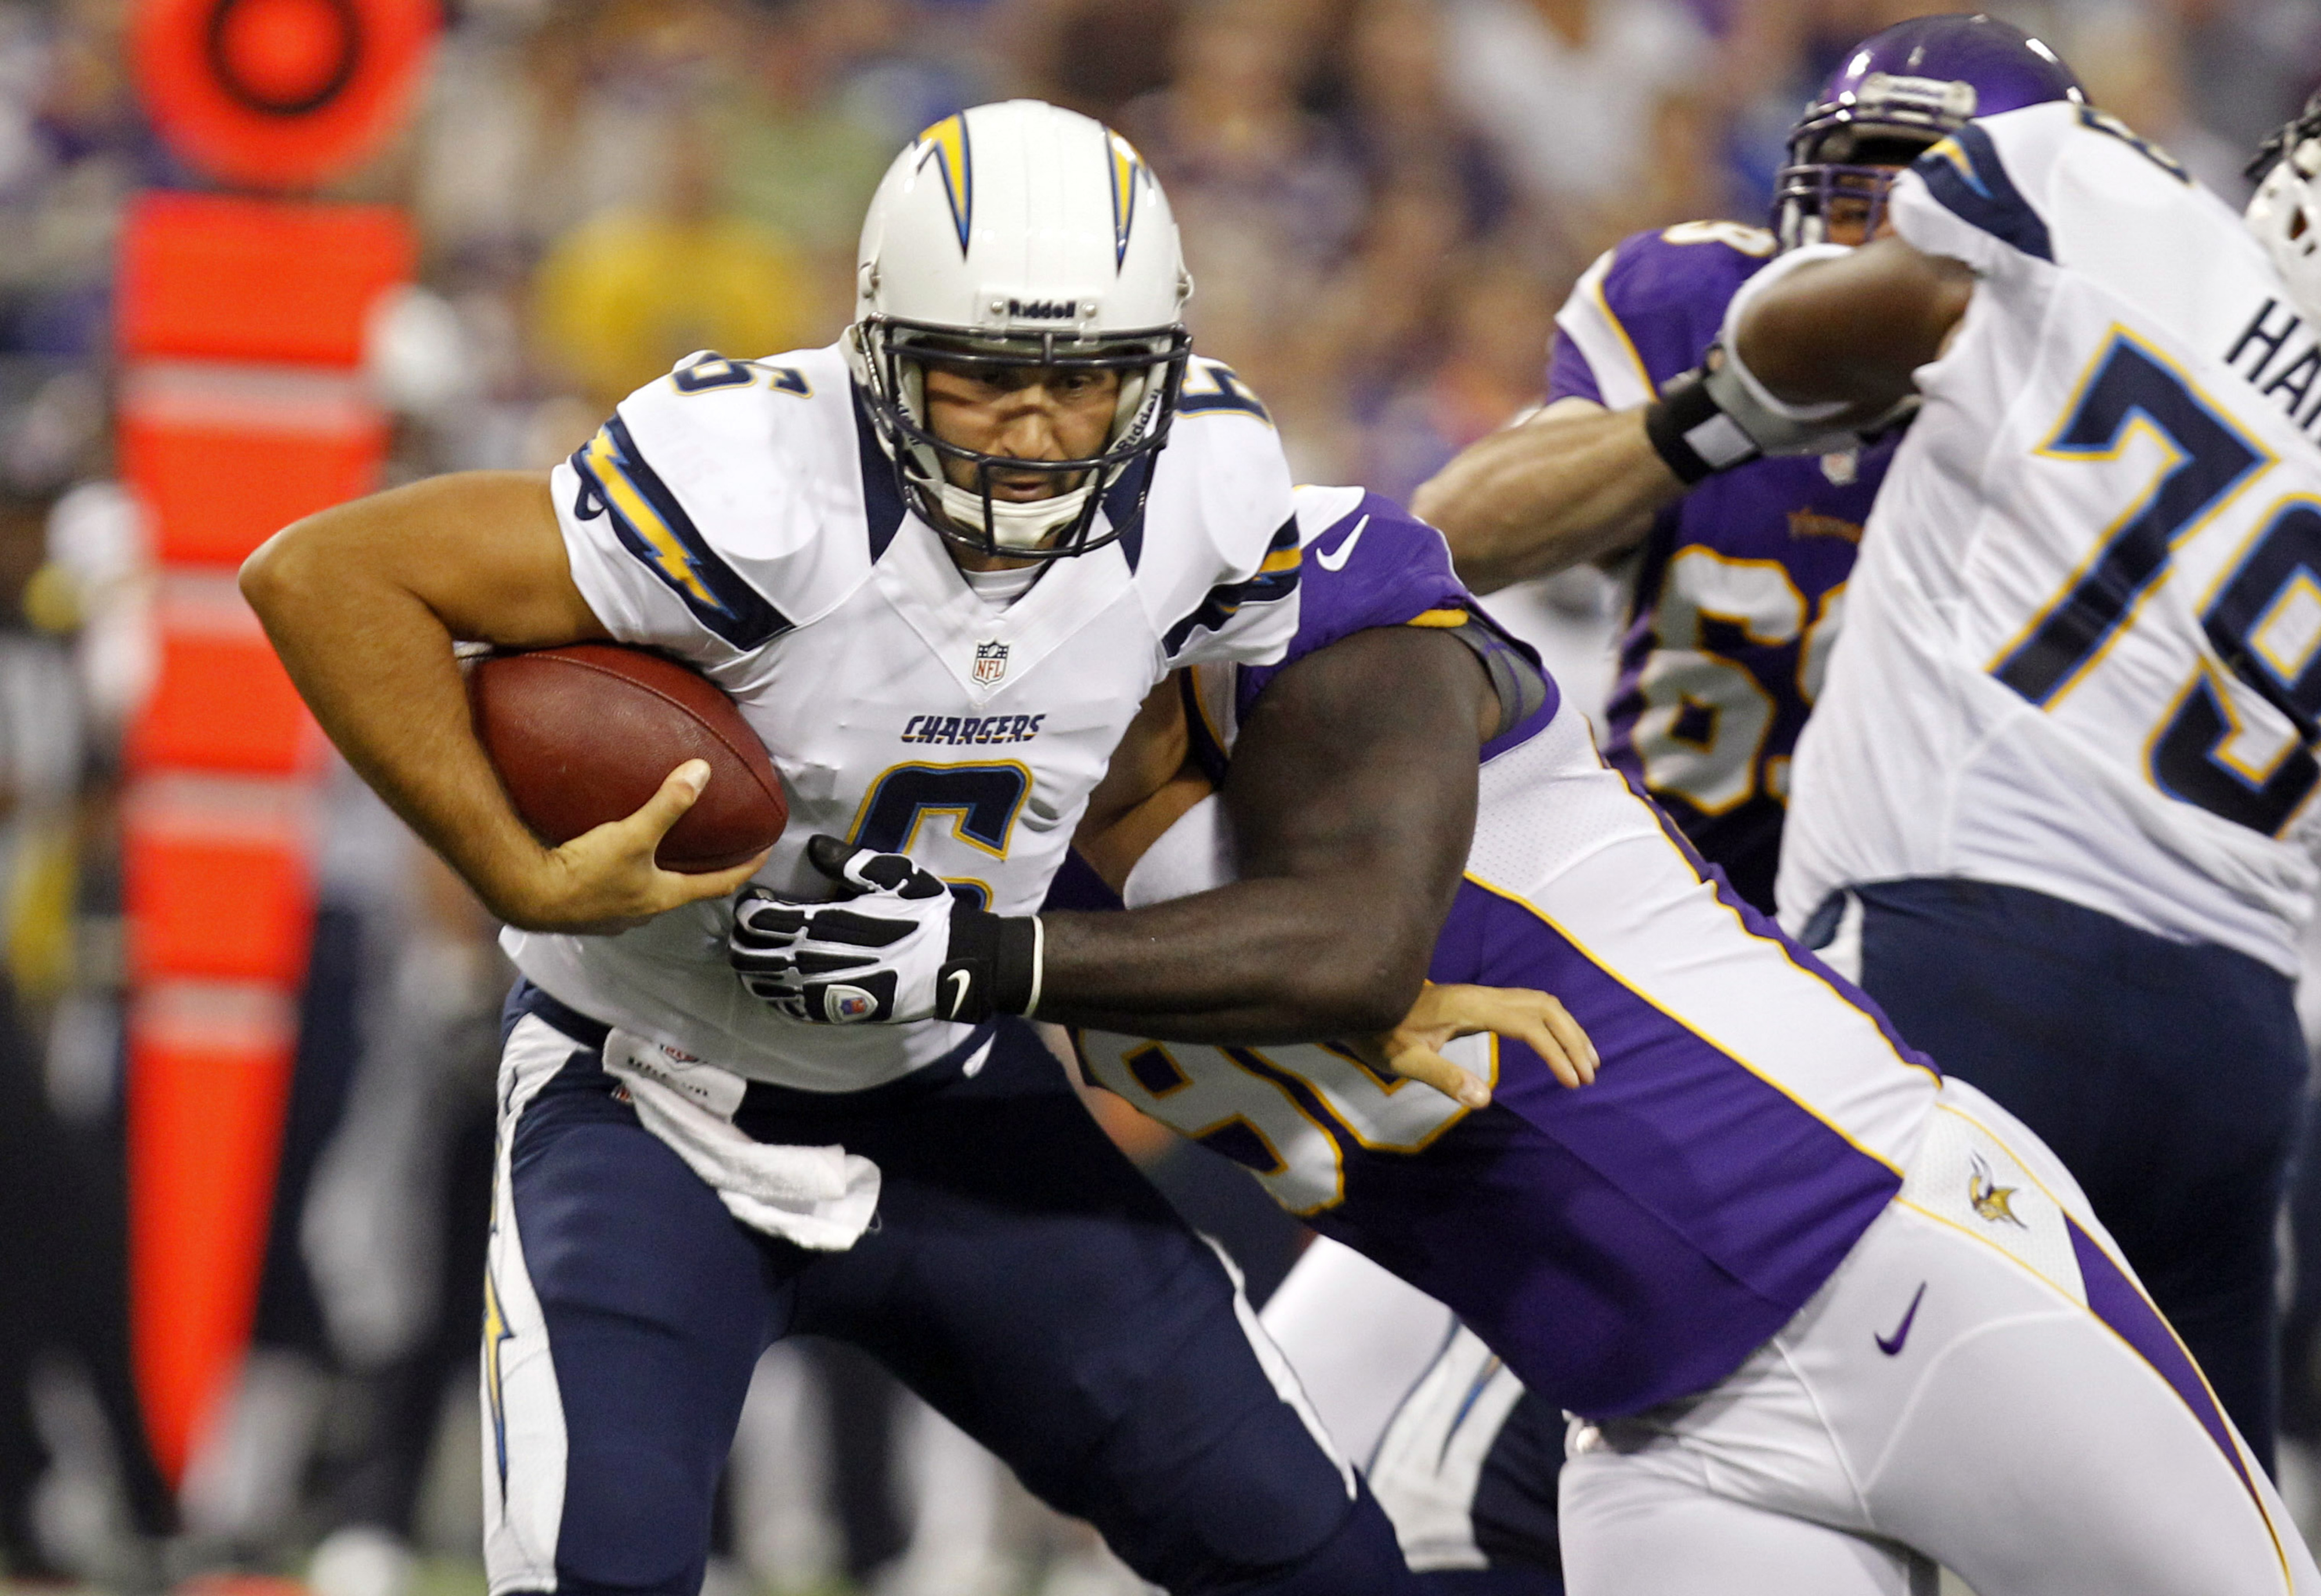 Aug 24, 2012; Minneapolis, MN, USA; Minnesota Vikings defensive tackle Fred Evans (90) sacks San Diego Chargers quarterback Charlie Whitehurst (6) for a 7 yard loss in the first quarter at the Metrodome. Mandatory Credit: Bruce Kluckhohn-US PRESSWIRE